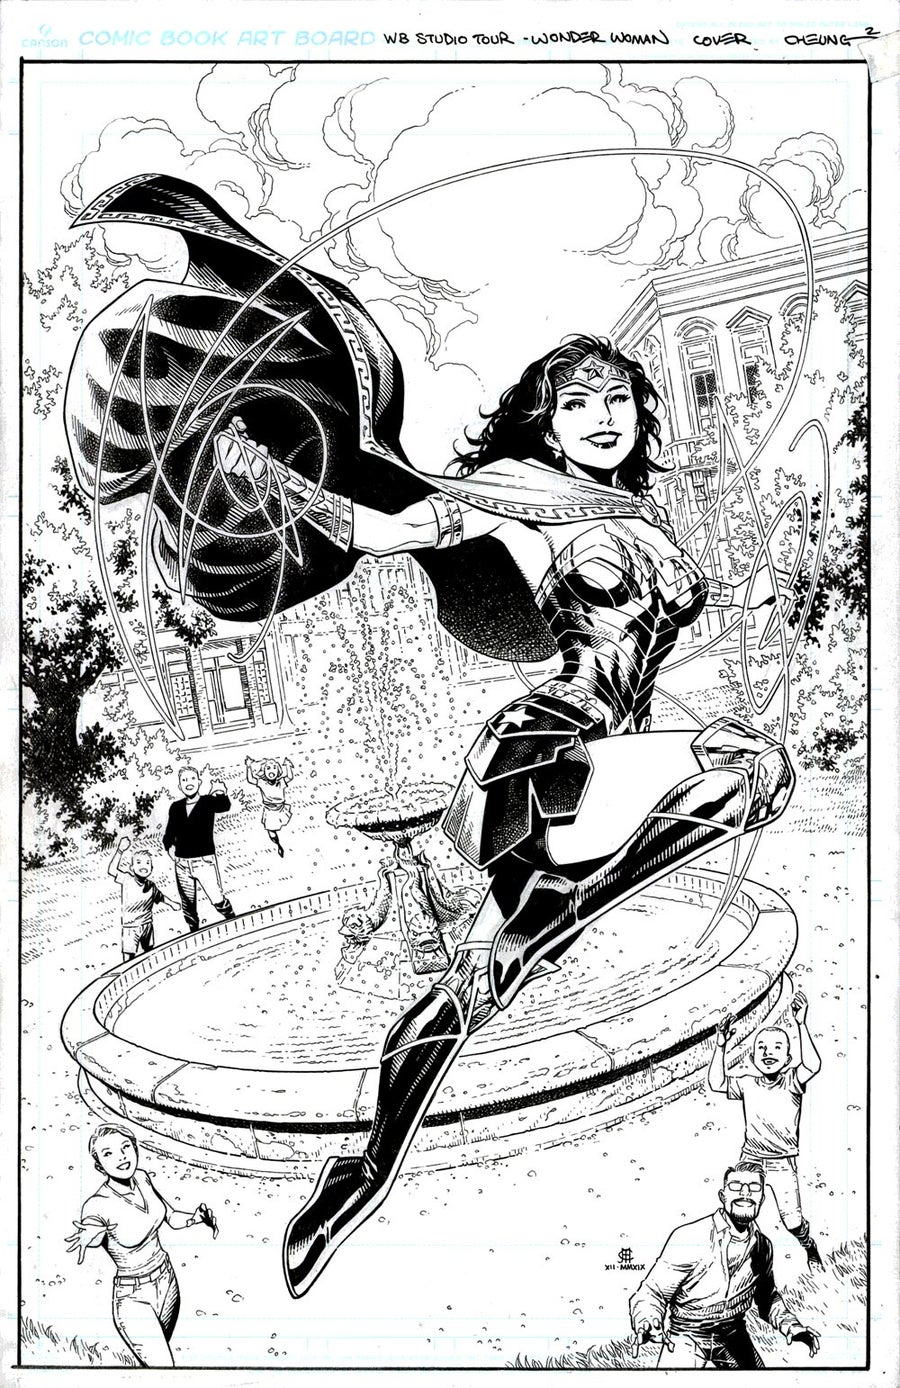 Image of WONDER WOMAN (WB Studios Tour Exclusive) TPB Cover